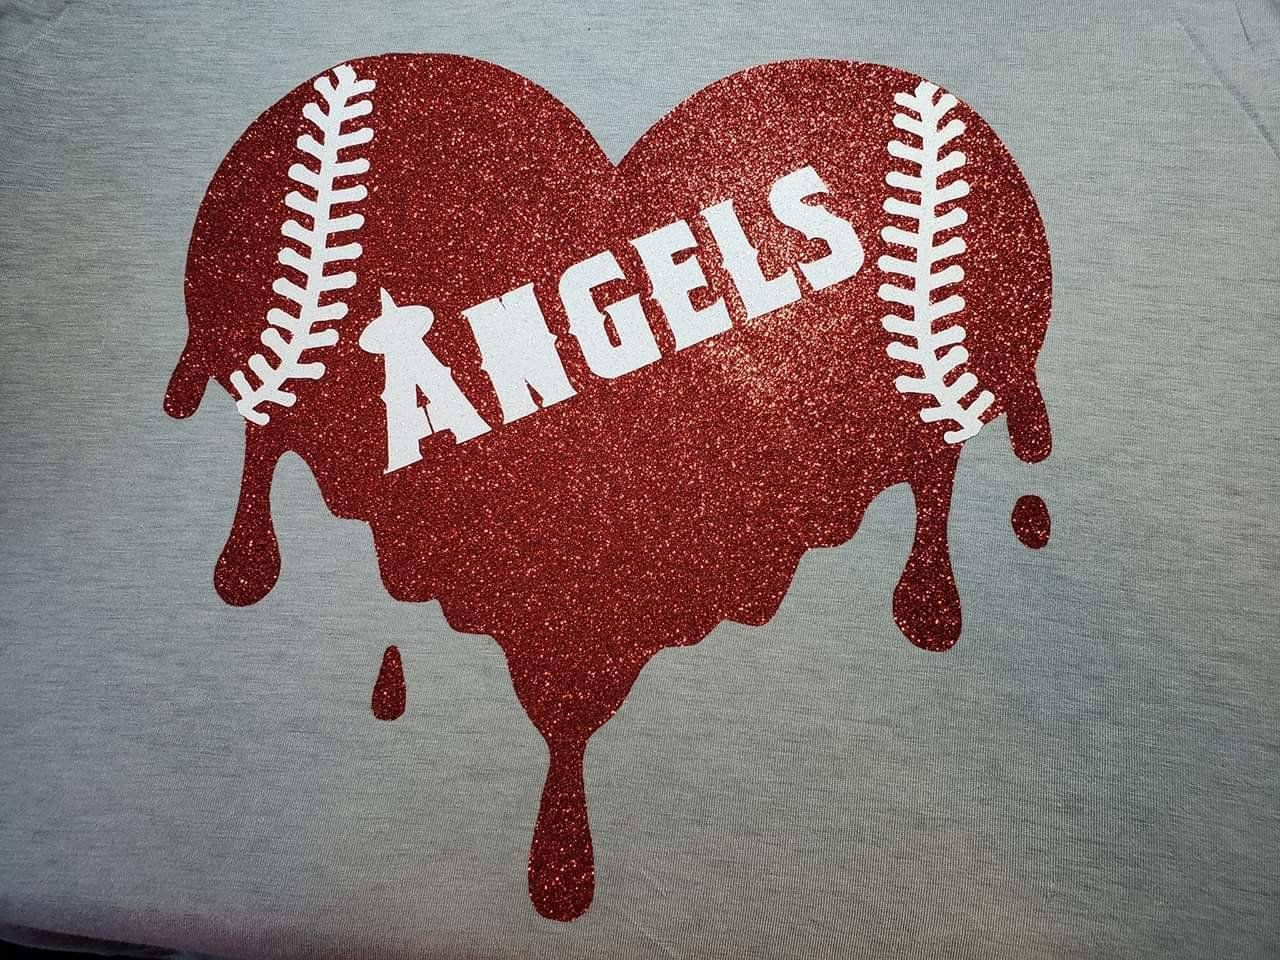 Dodger Angel Bleeding Heart T Shirts Etsy Bleeding Heart Dodgers Angels Dodgers